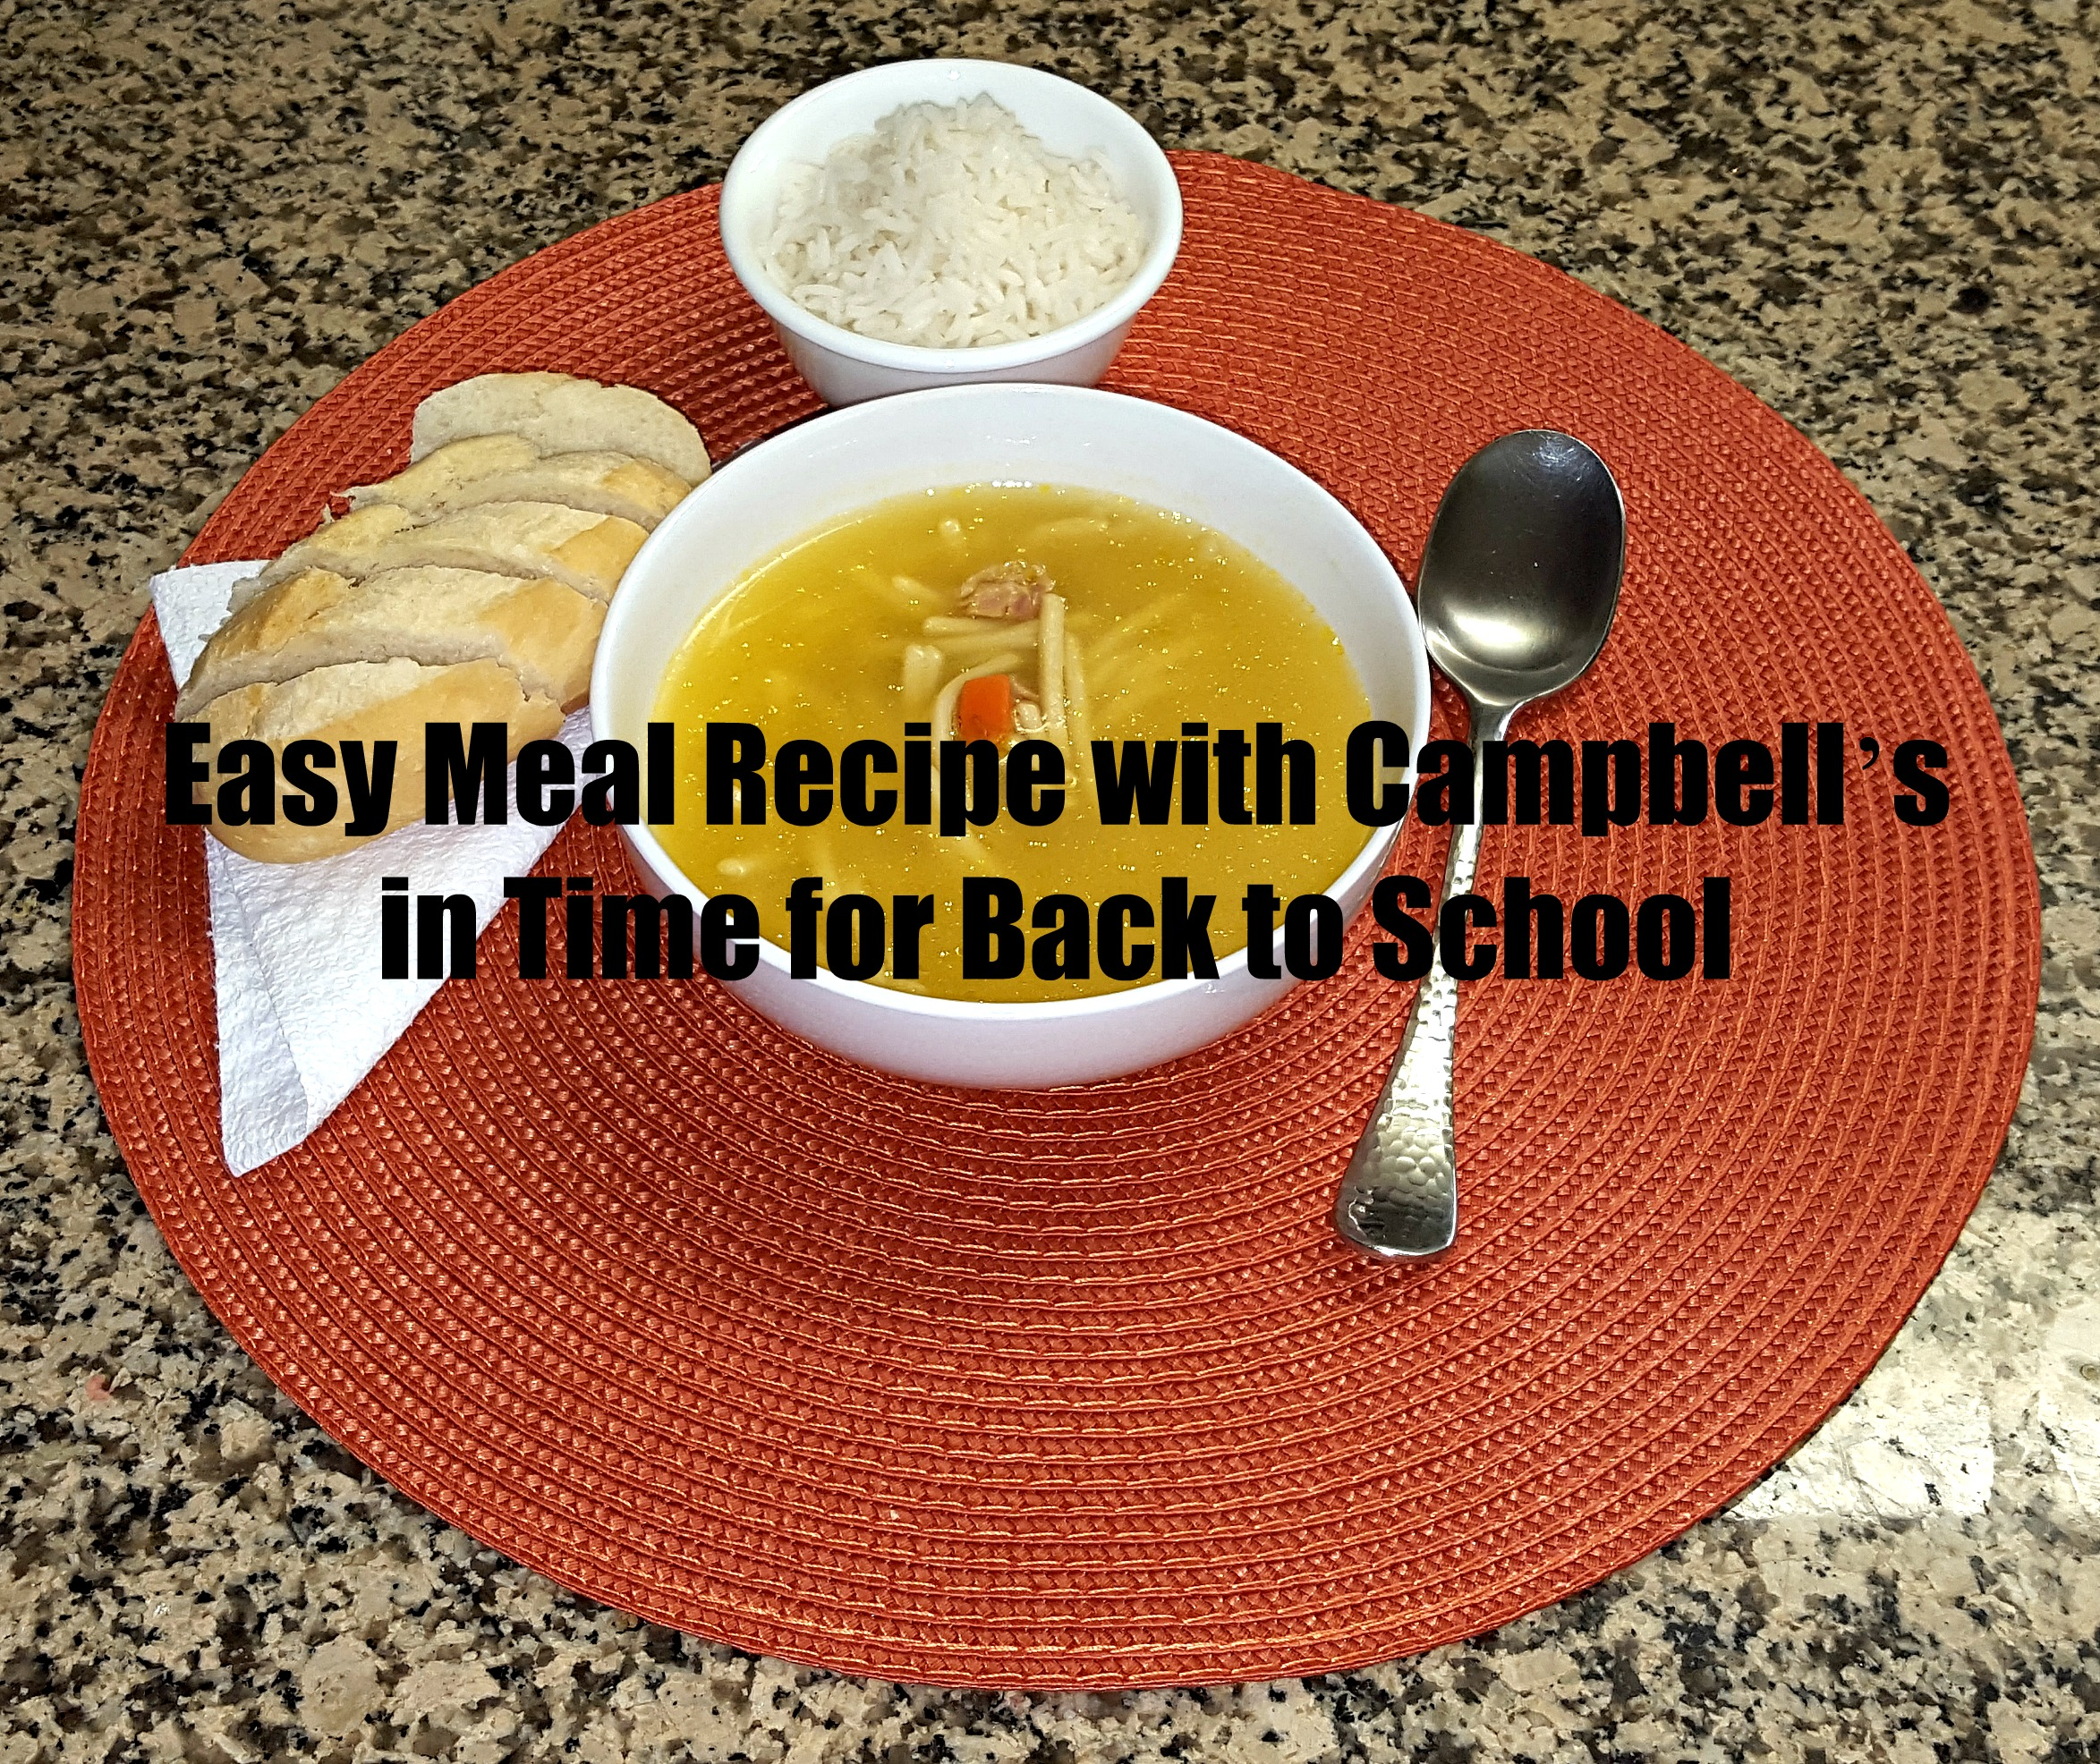 Easy Meal Recipe with Campbell's in Time for Back to School